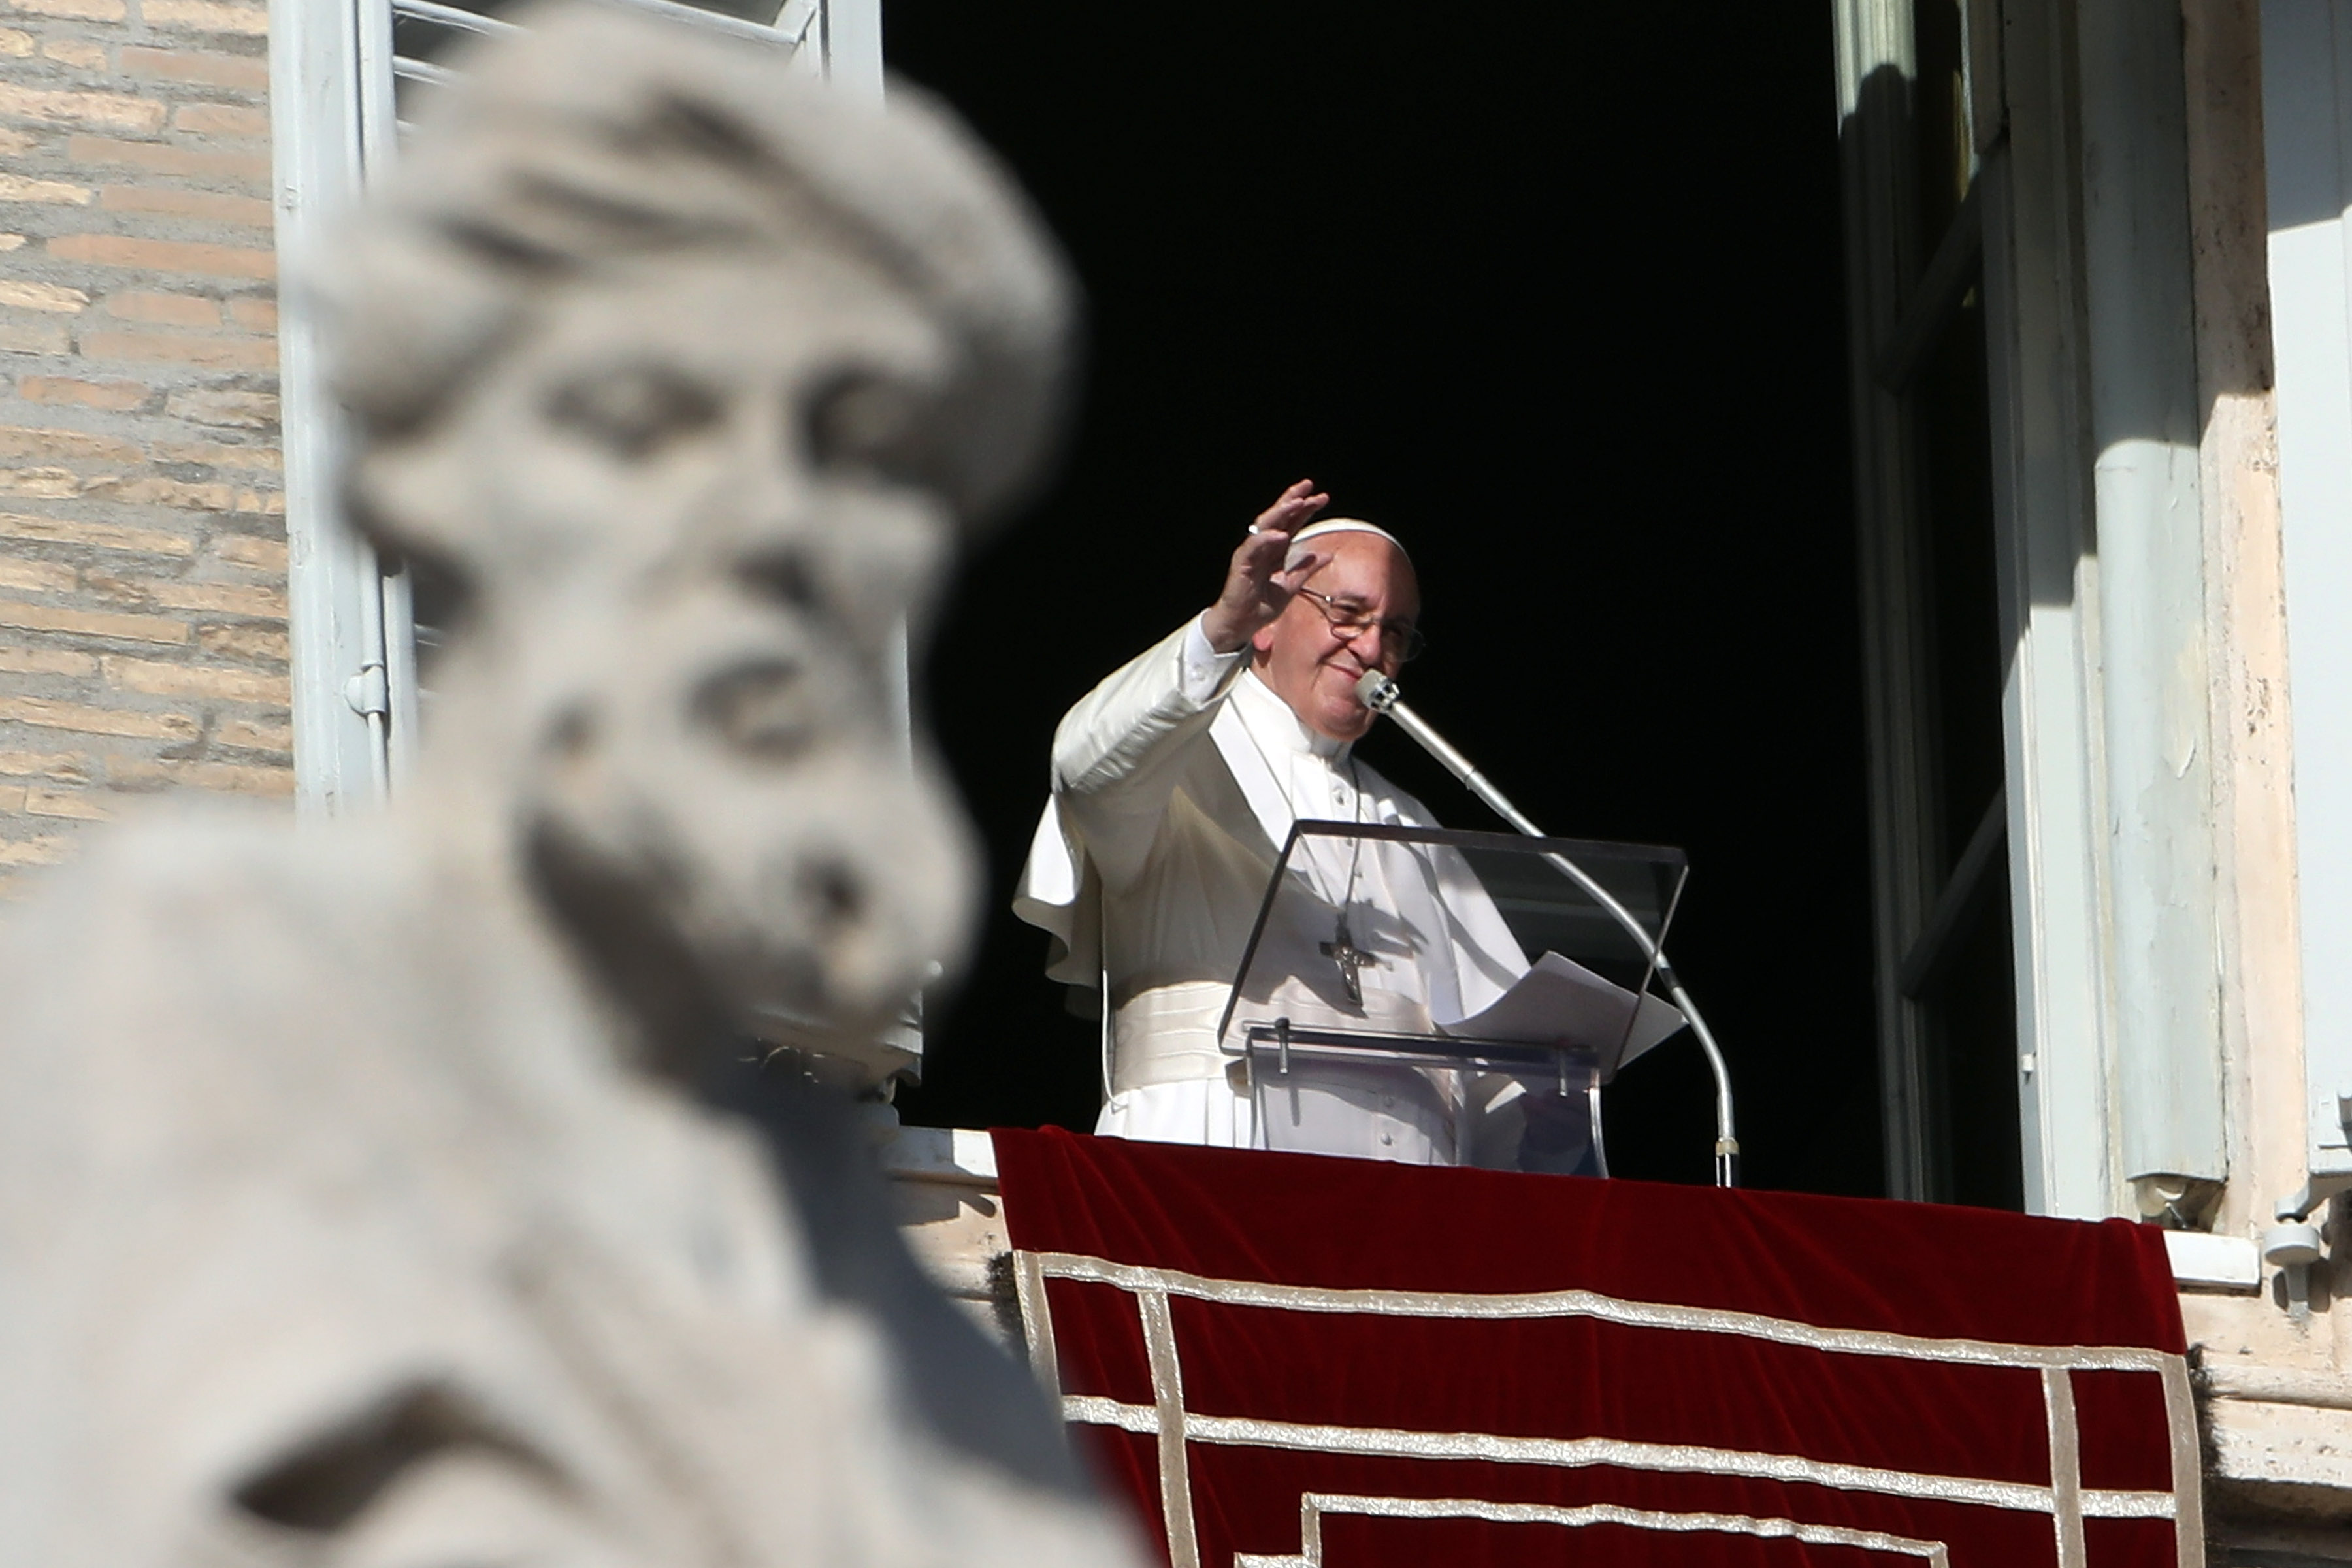 VATICAN CITY, VATICAN - DECEMBER 17:  Pope Francis delivers his Sunday Angelus blessing in St. Peter's Square on December 17, 2017 in Vatican City, Vatican. Pope Francis today turns 81 years old.  (Photo by Franco Origlia/Getty Images)